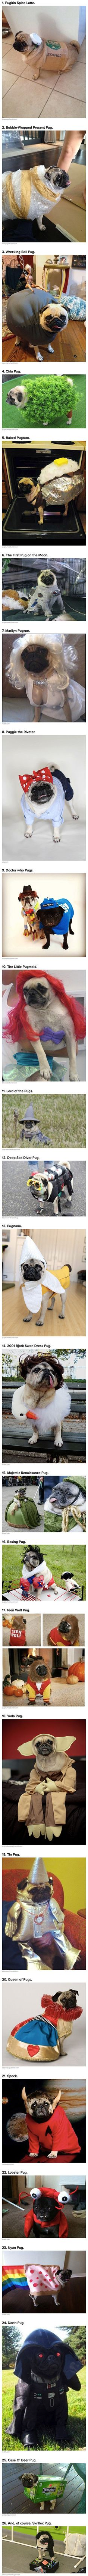 The ultimate Pug costumes. Bahahaha oh my gosh